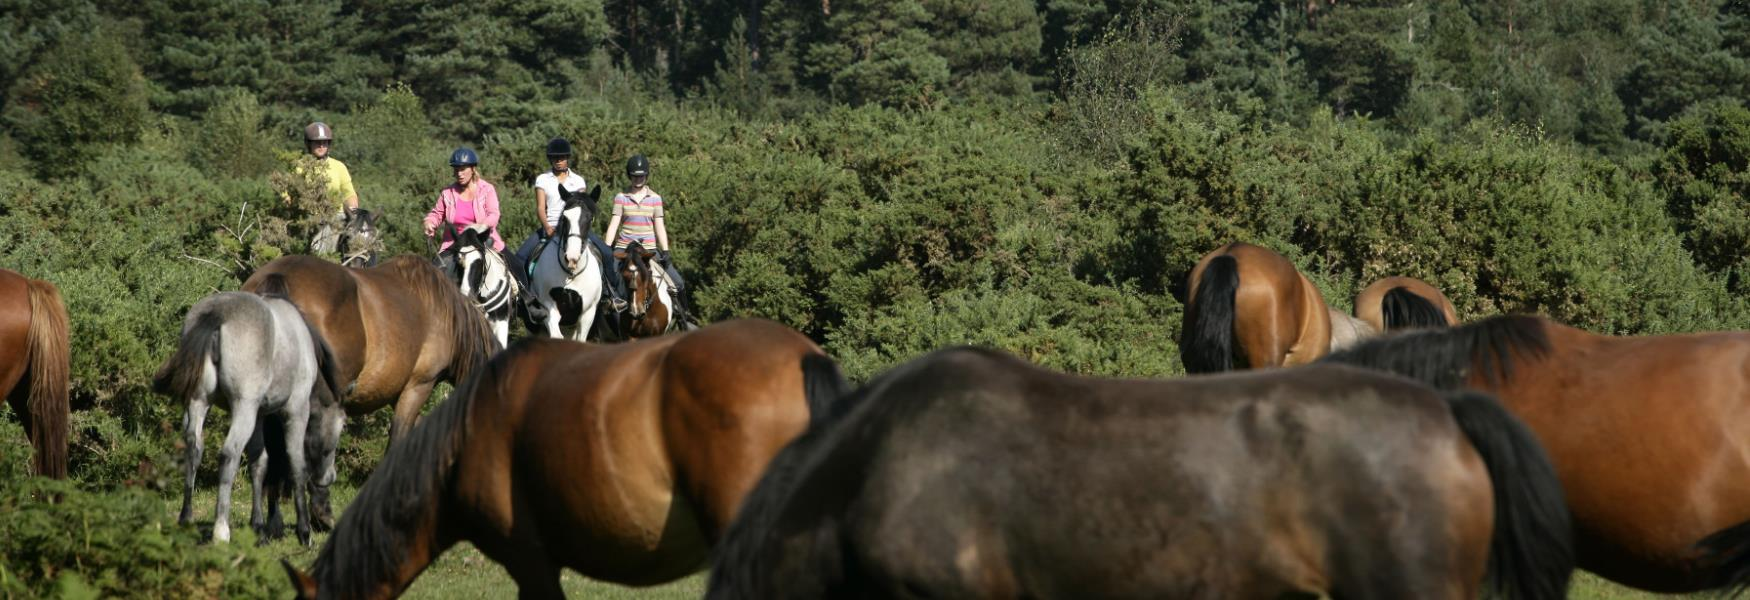 Horse Riding in the New Forest   Best Stables and Routes